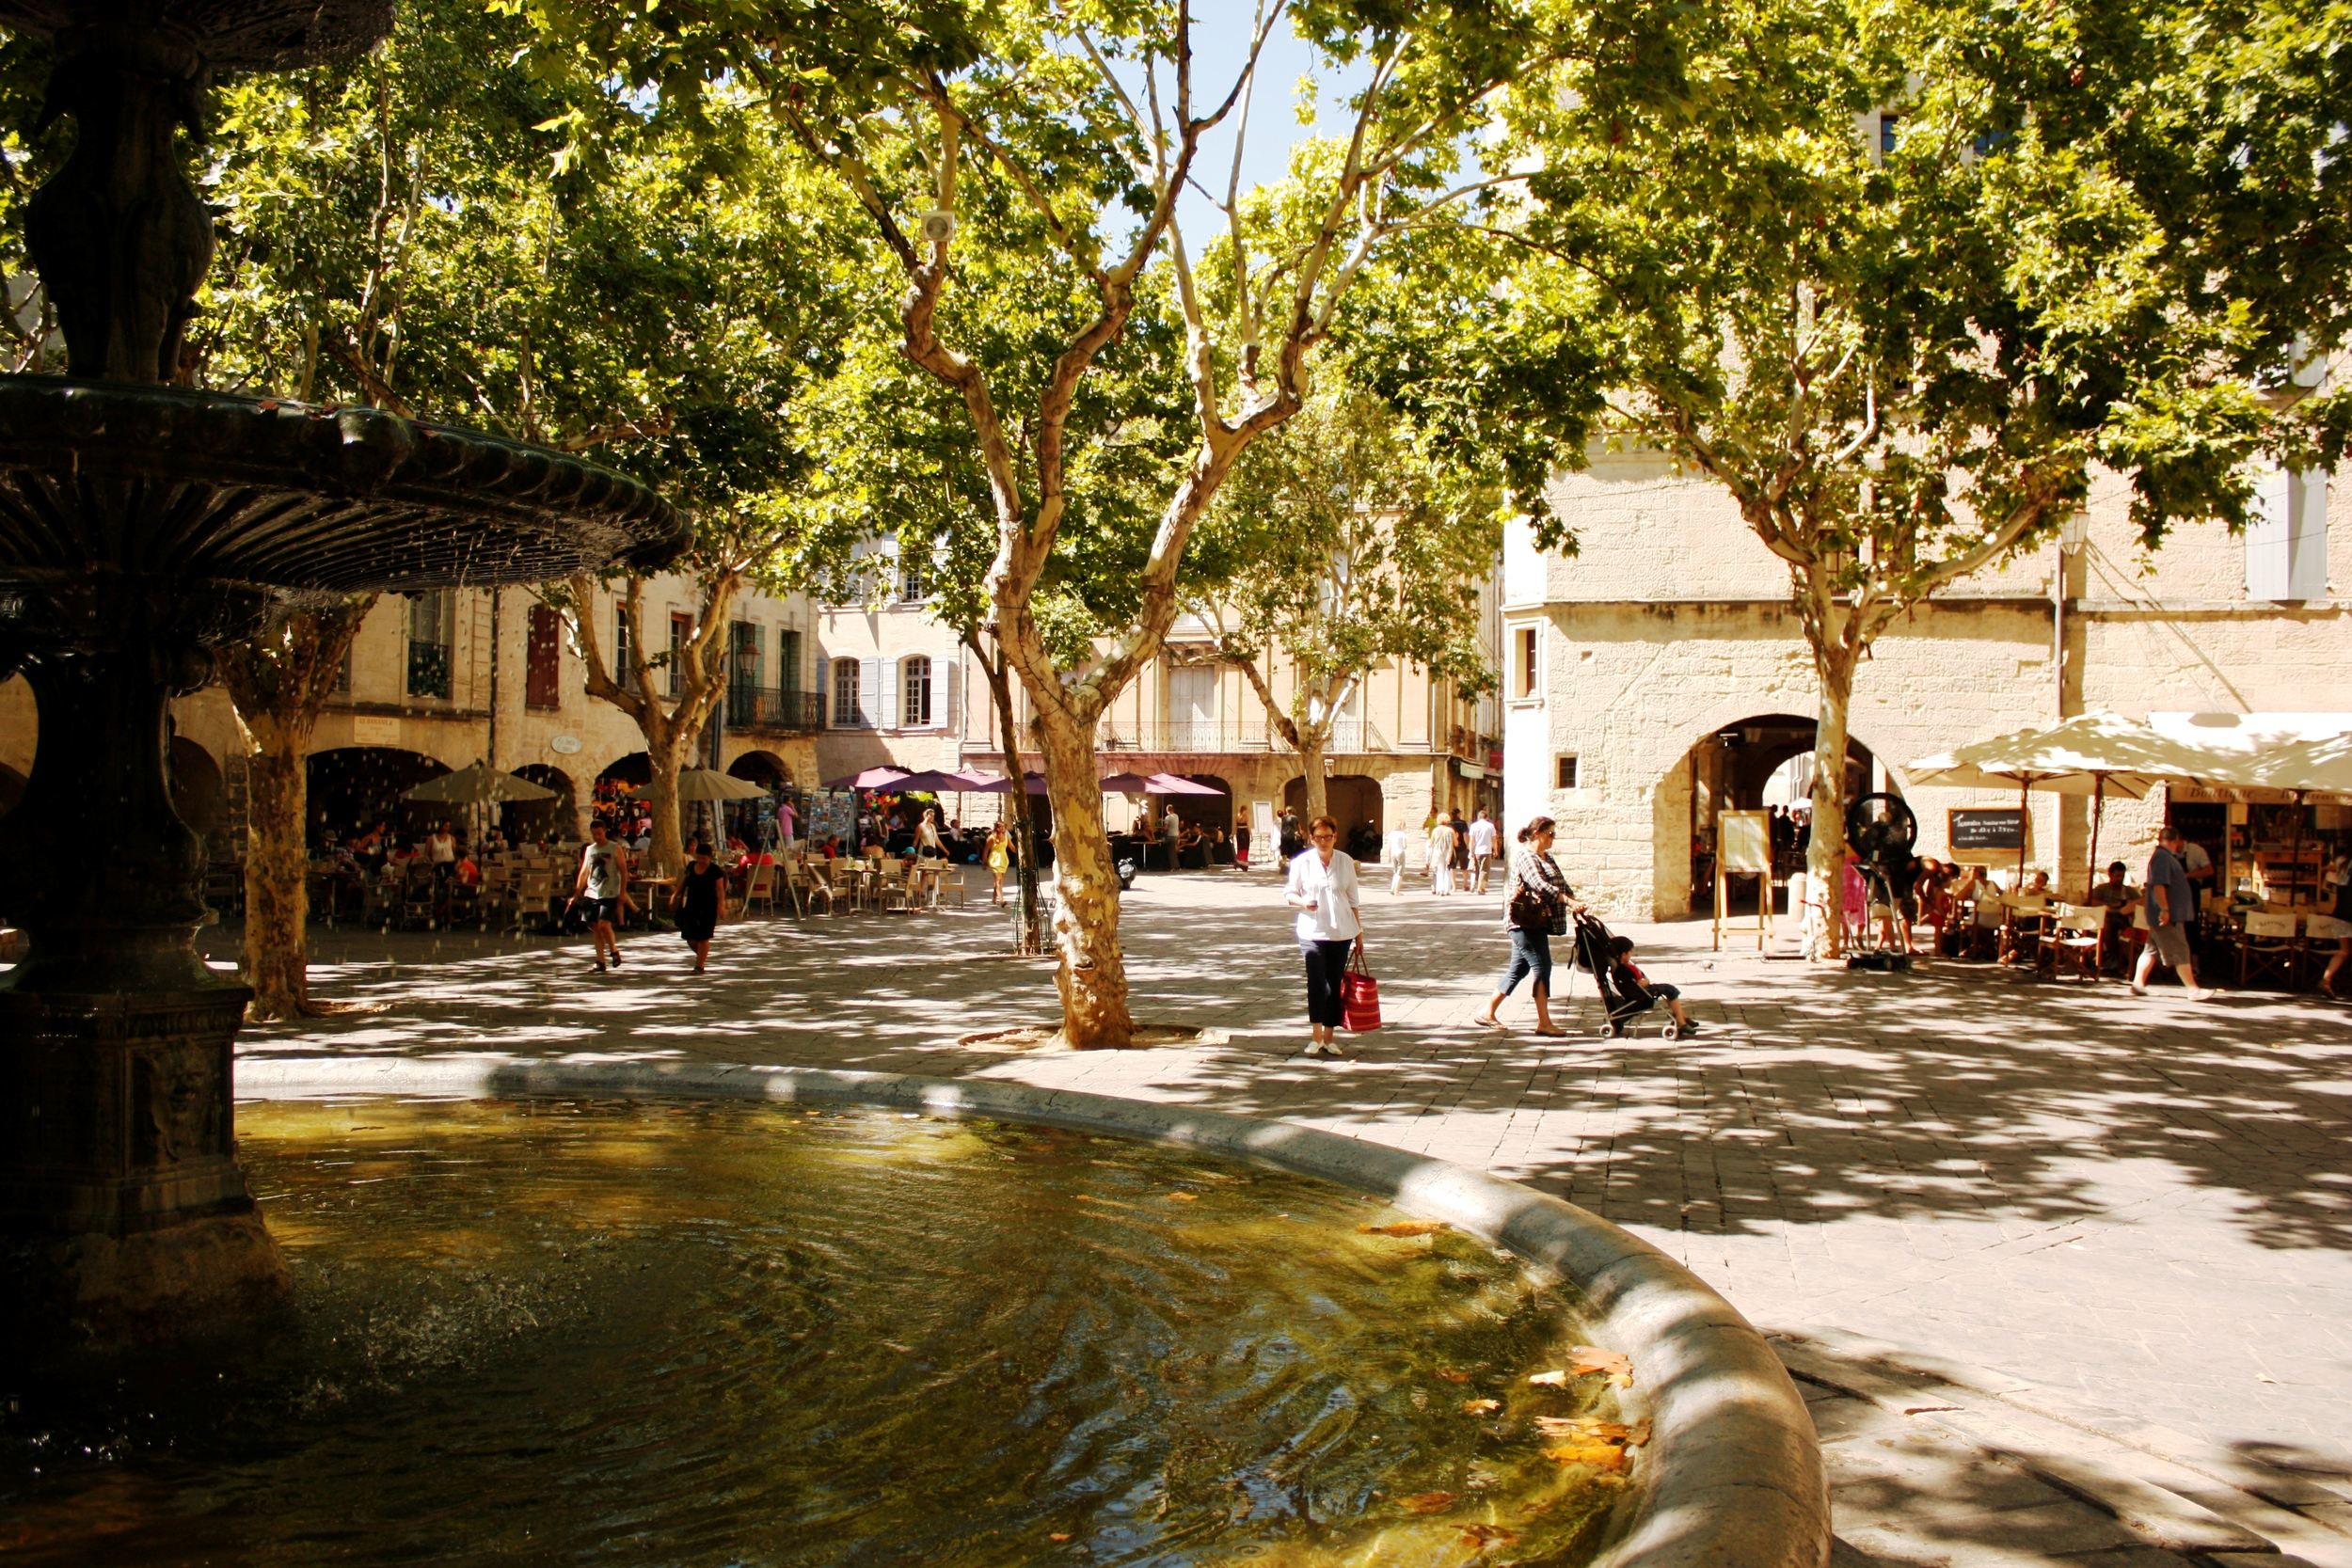 Main square, Uzes